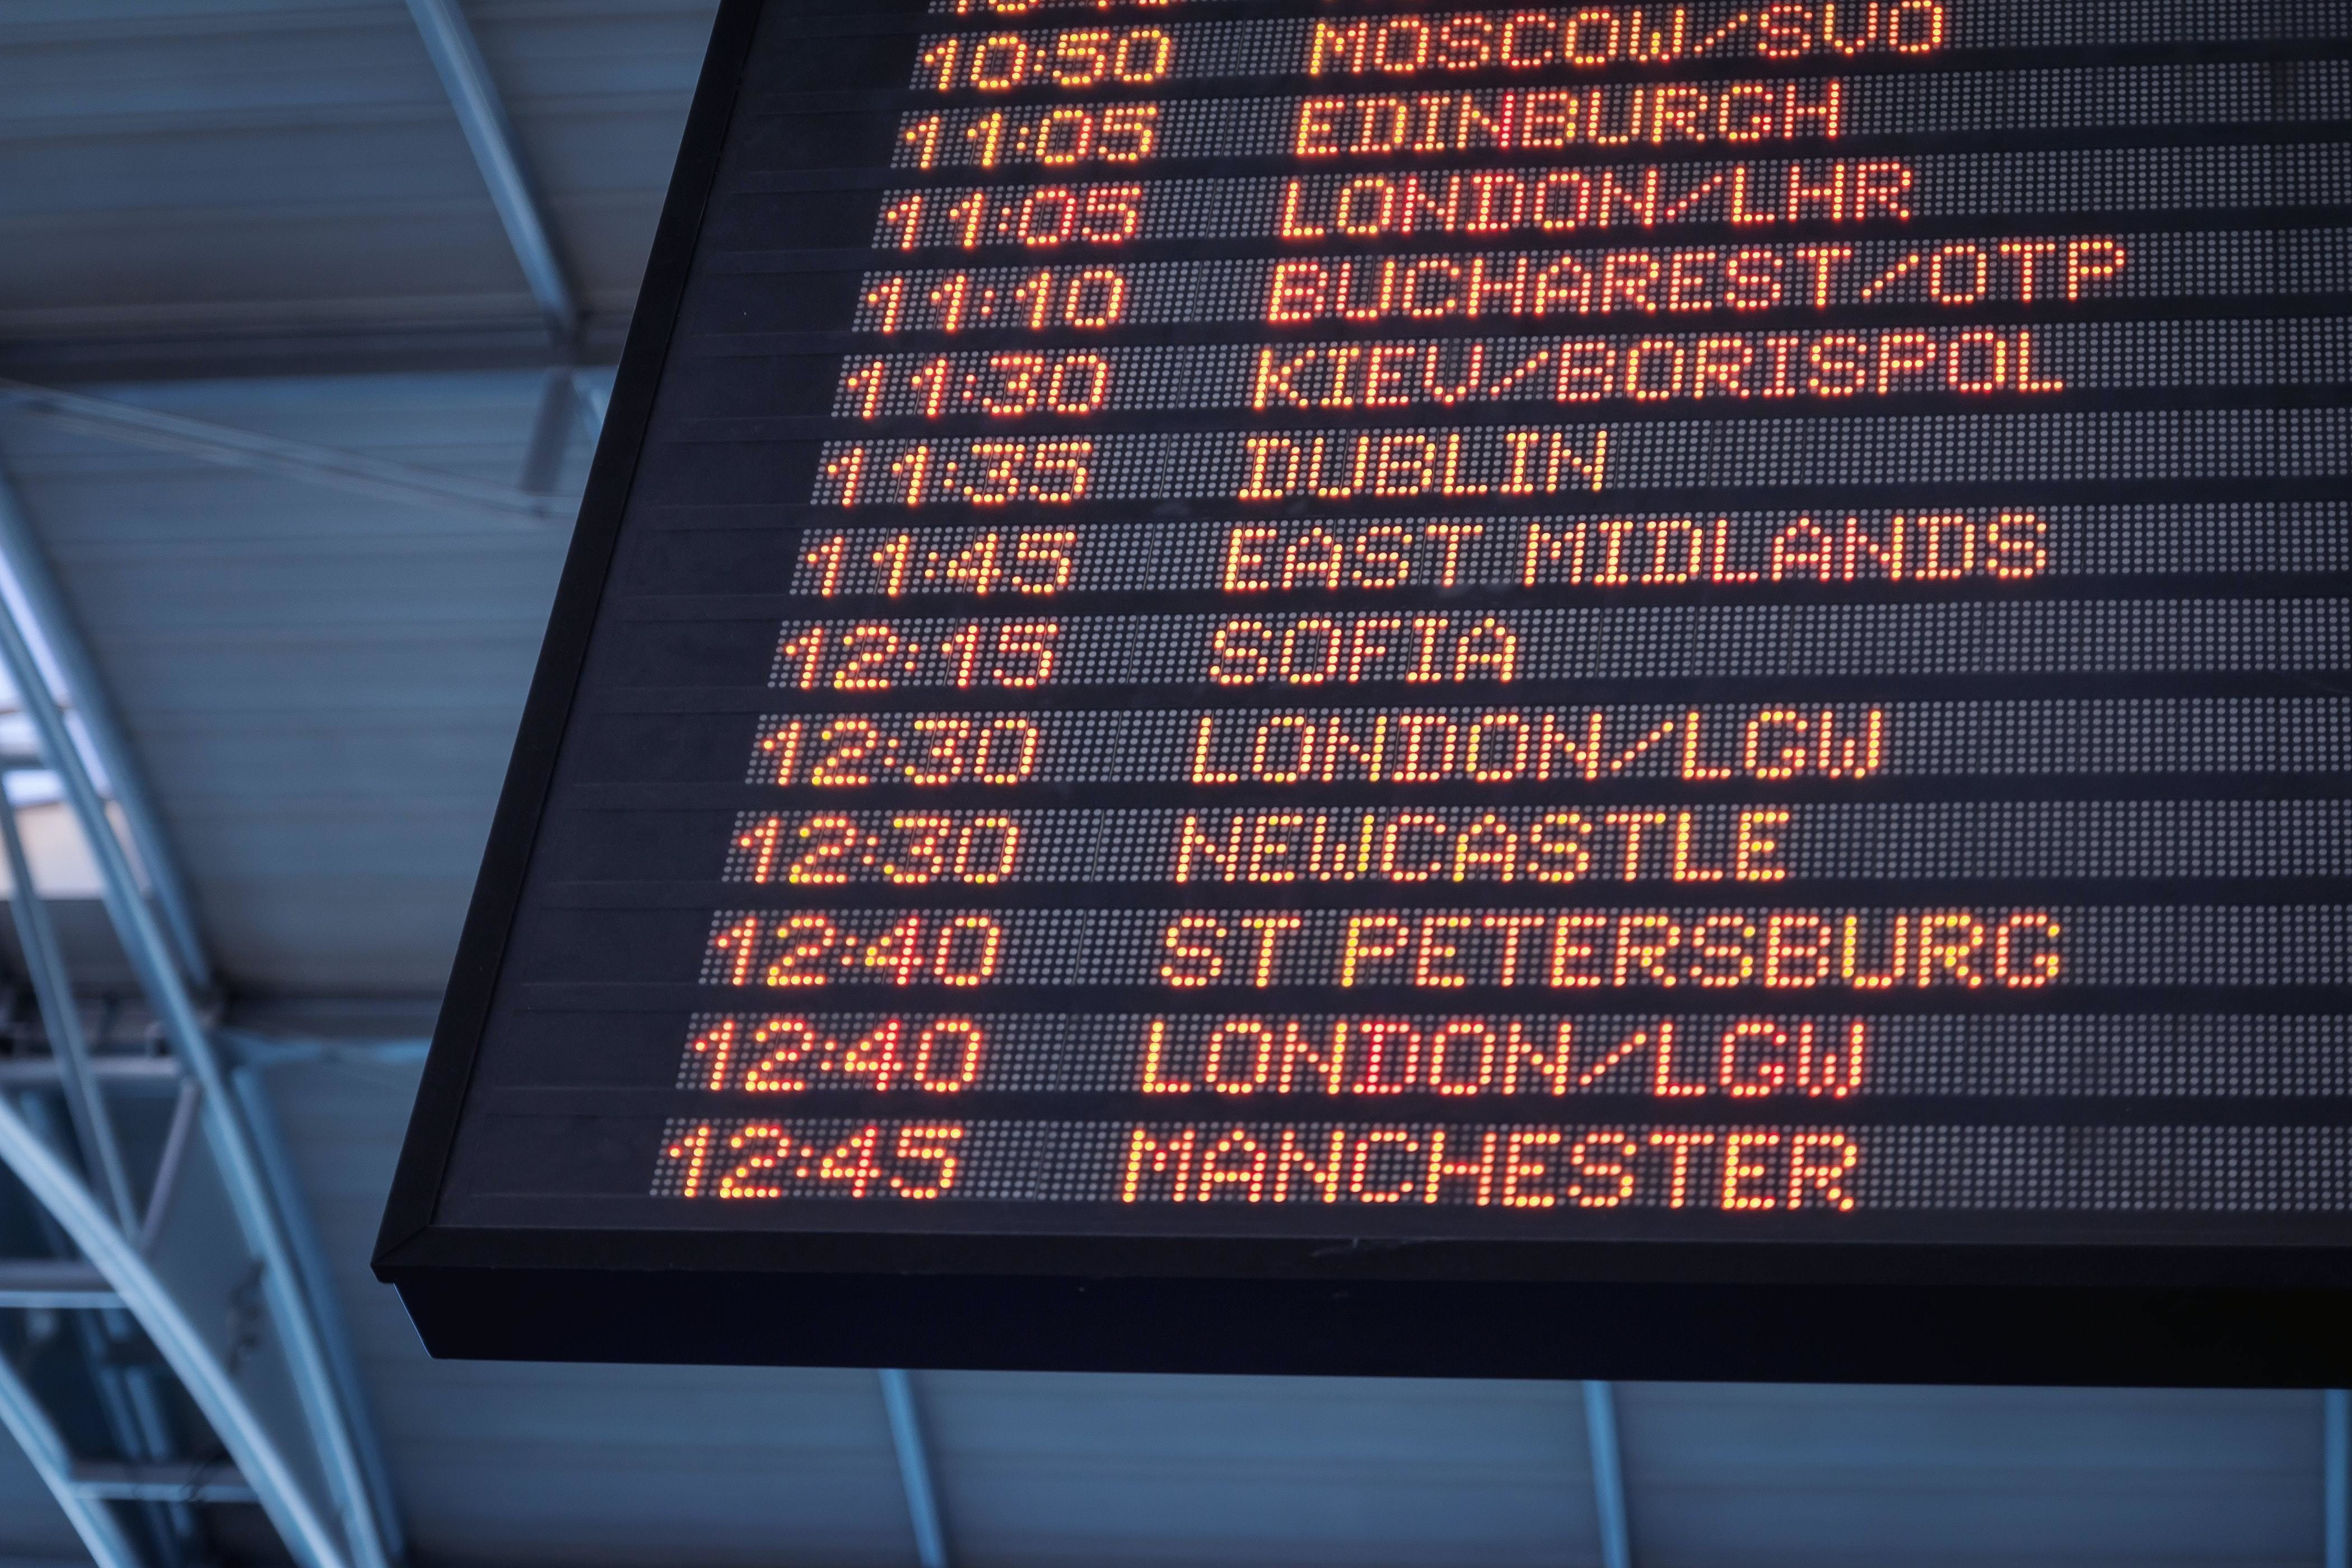 A board at the airport showing the schedule of flights